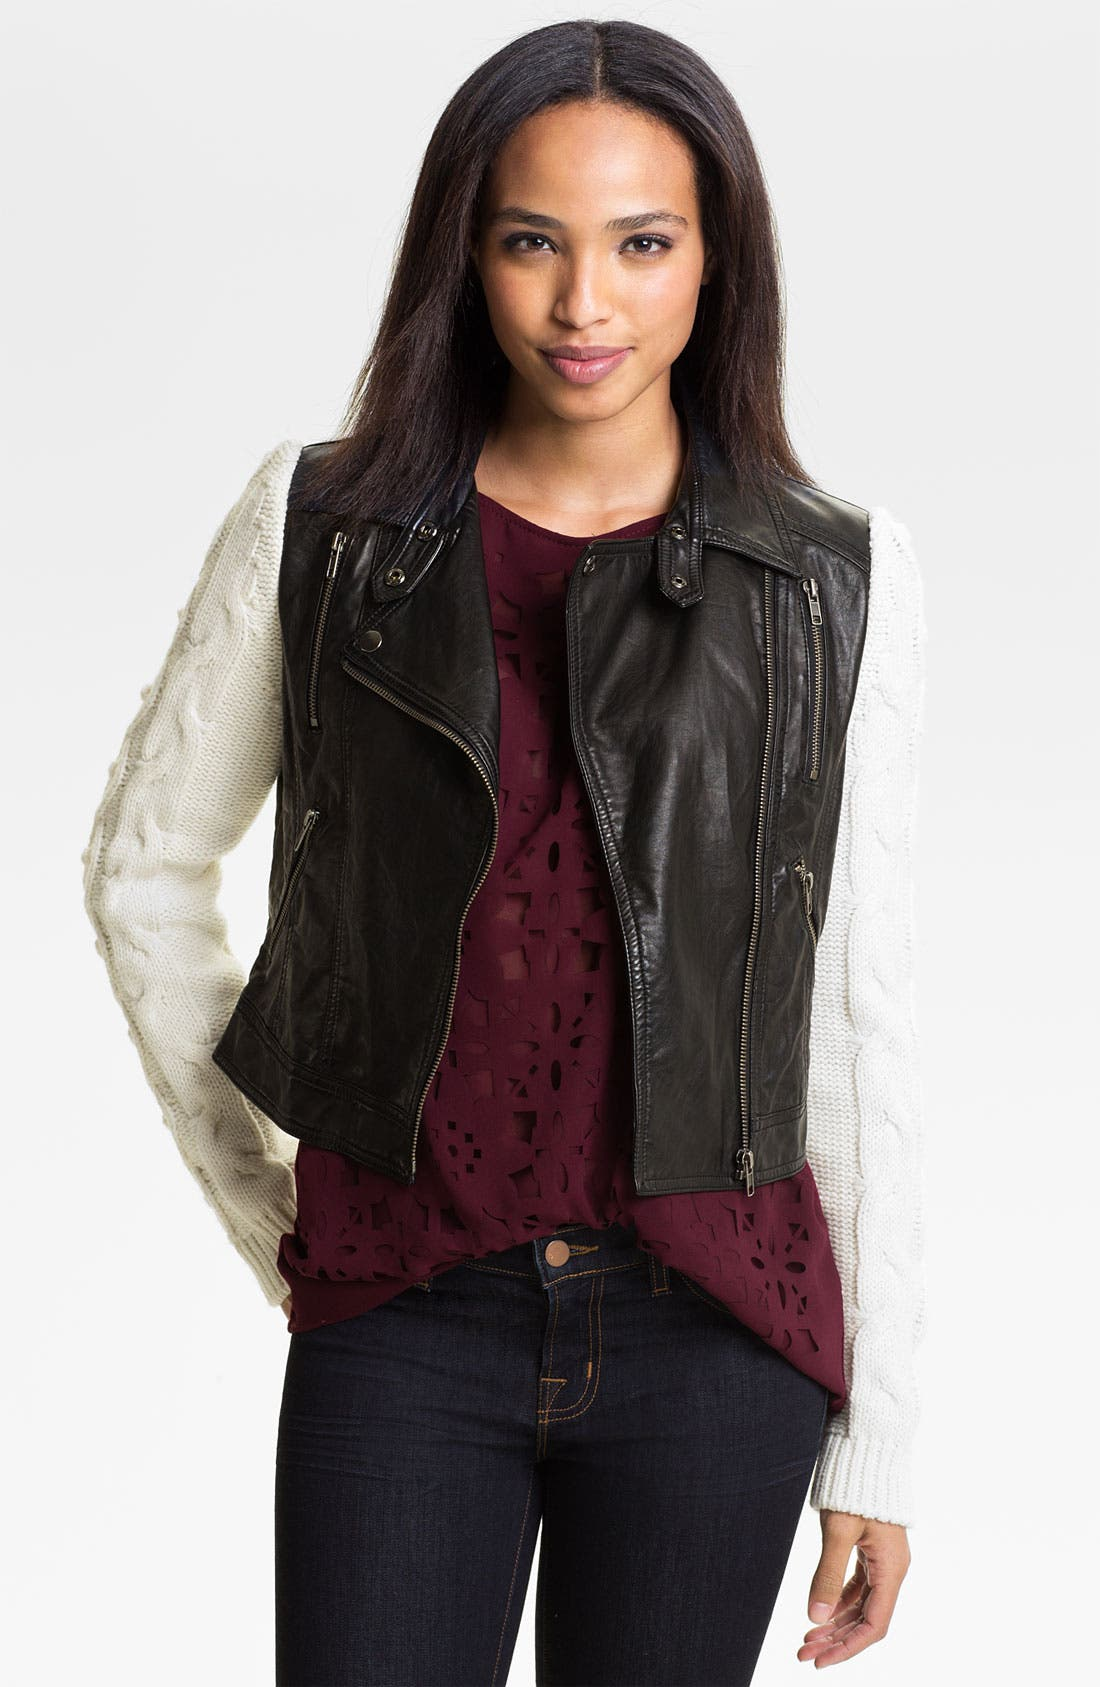 Alternate Image 1 Selected - Two by Vince Camuto Faux Leather Jacket with Knit Sleeves